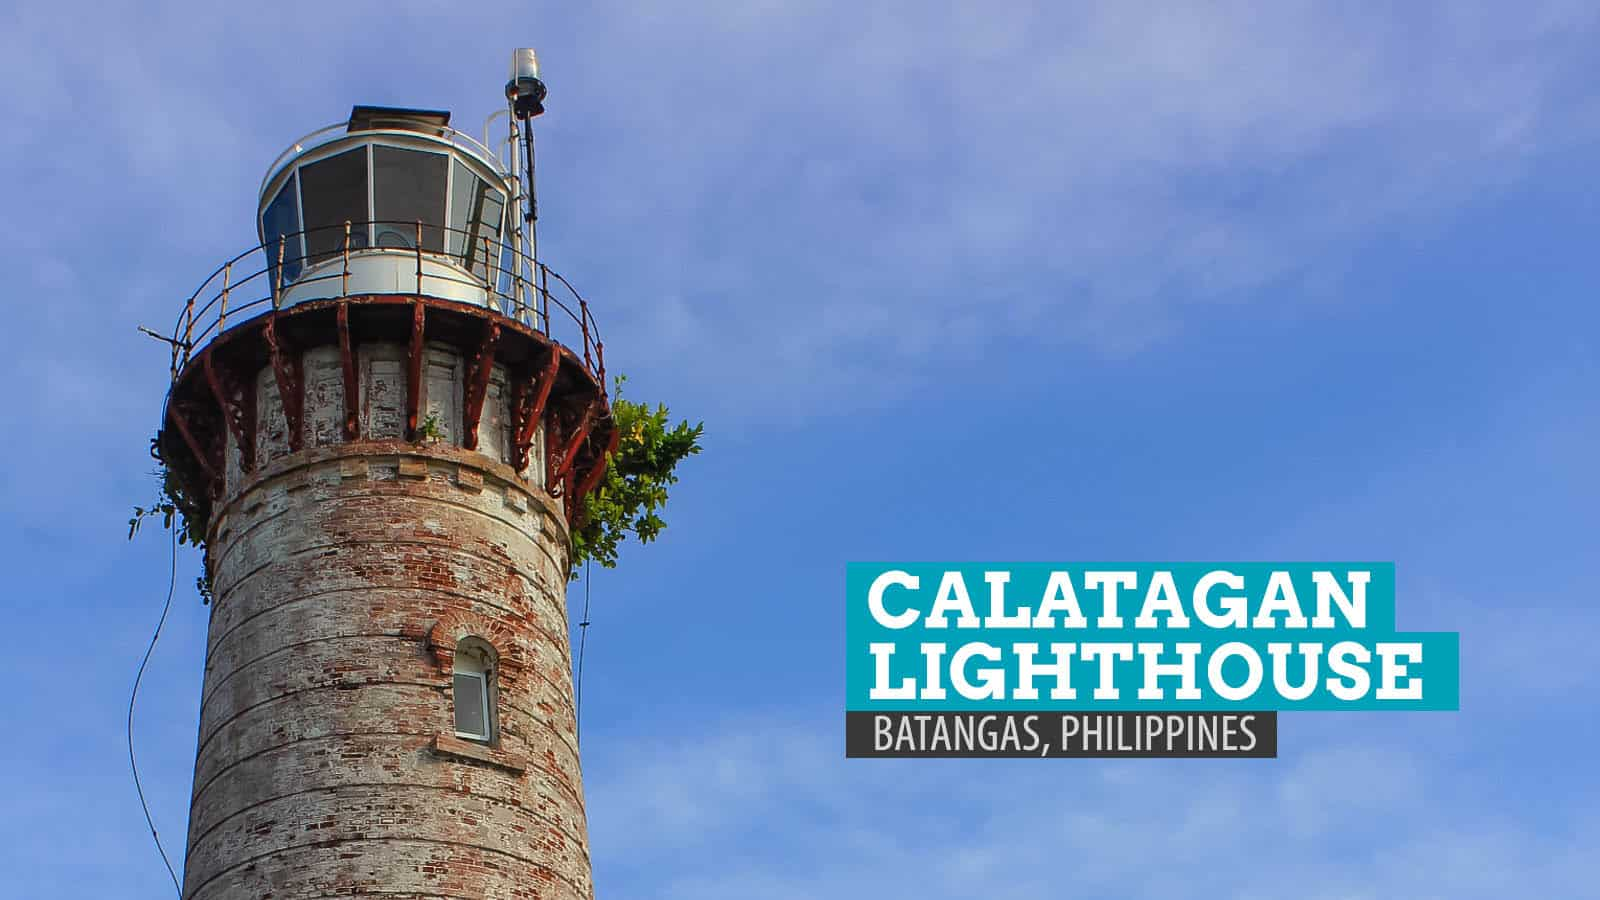 CALATAGAN LIGHTHOUSE: The Busy Beacon of Batangas, Philippines